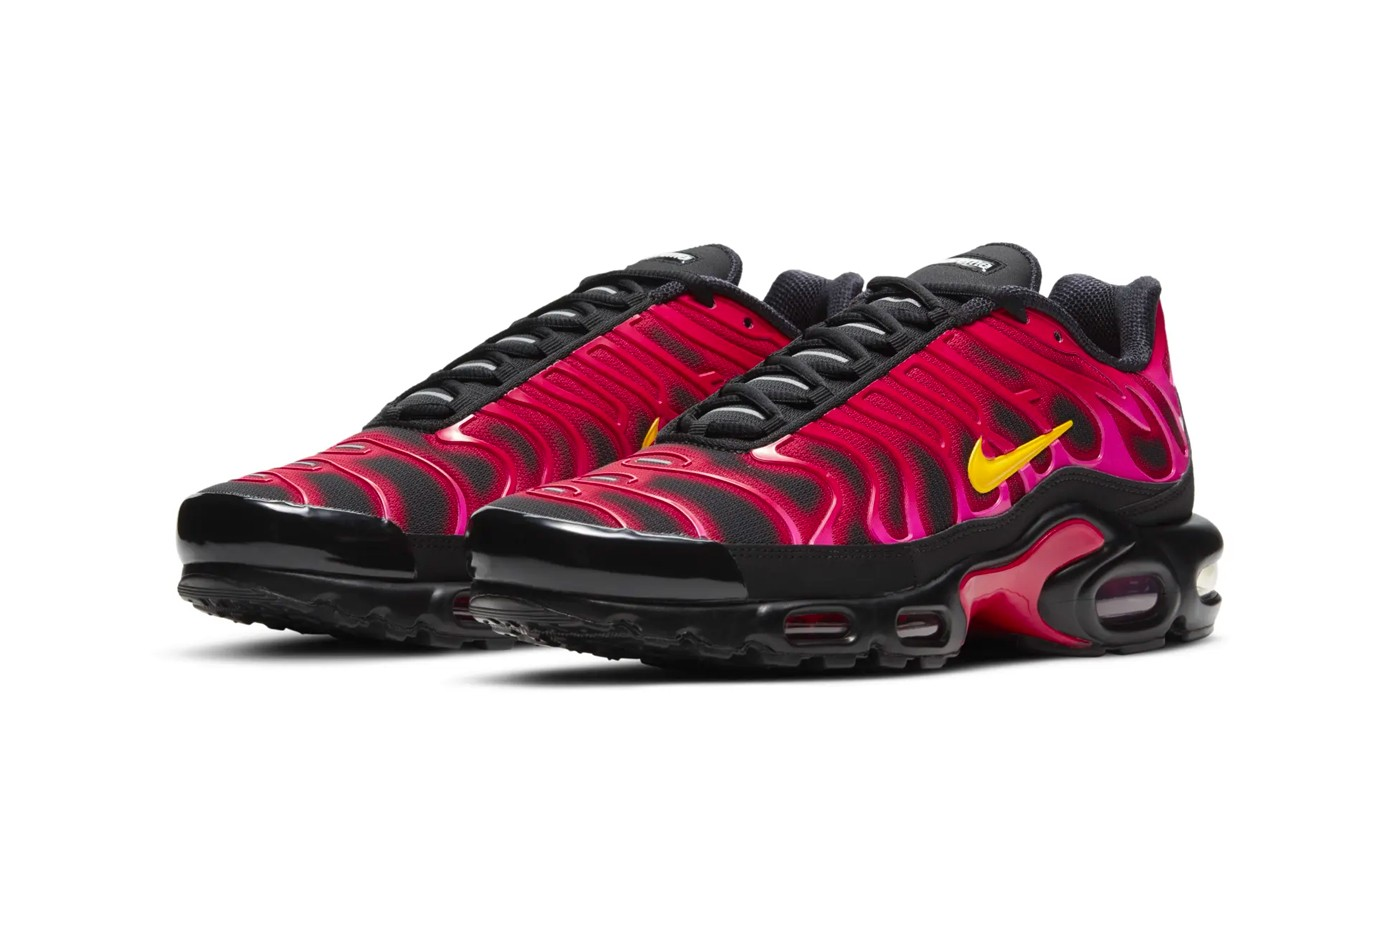 Supreme-Nike-Air-Max-Plus-Fire-Pink-Full-View